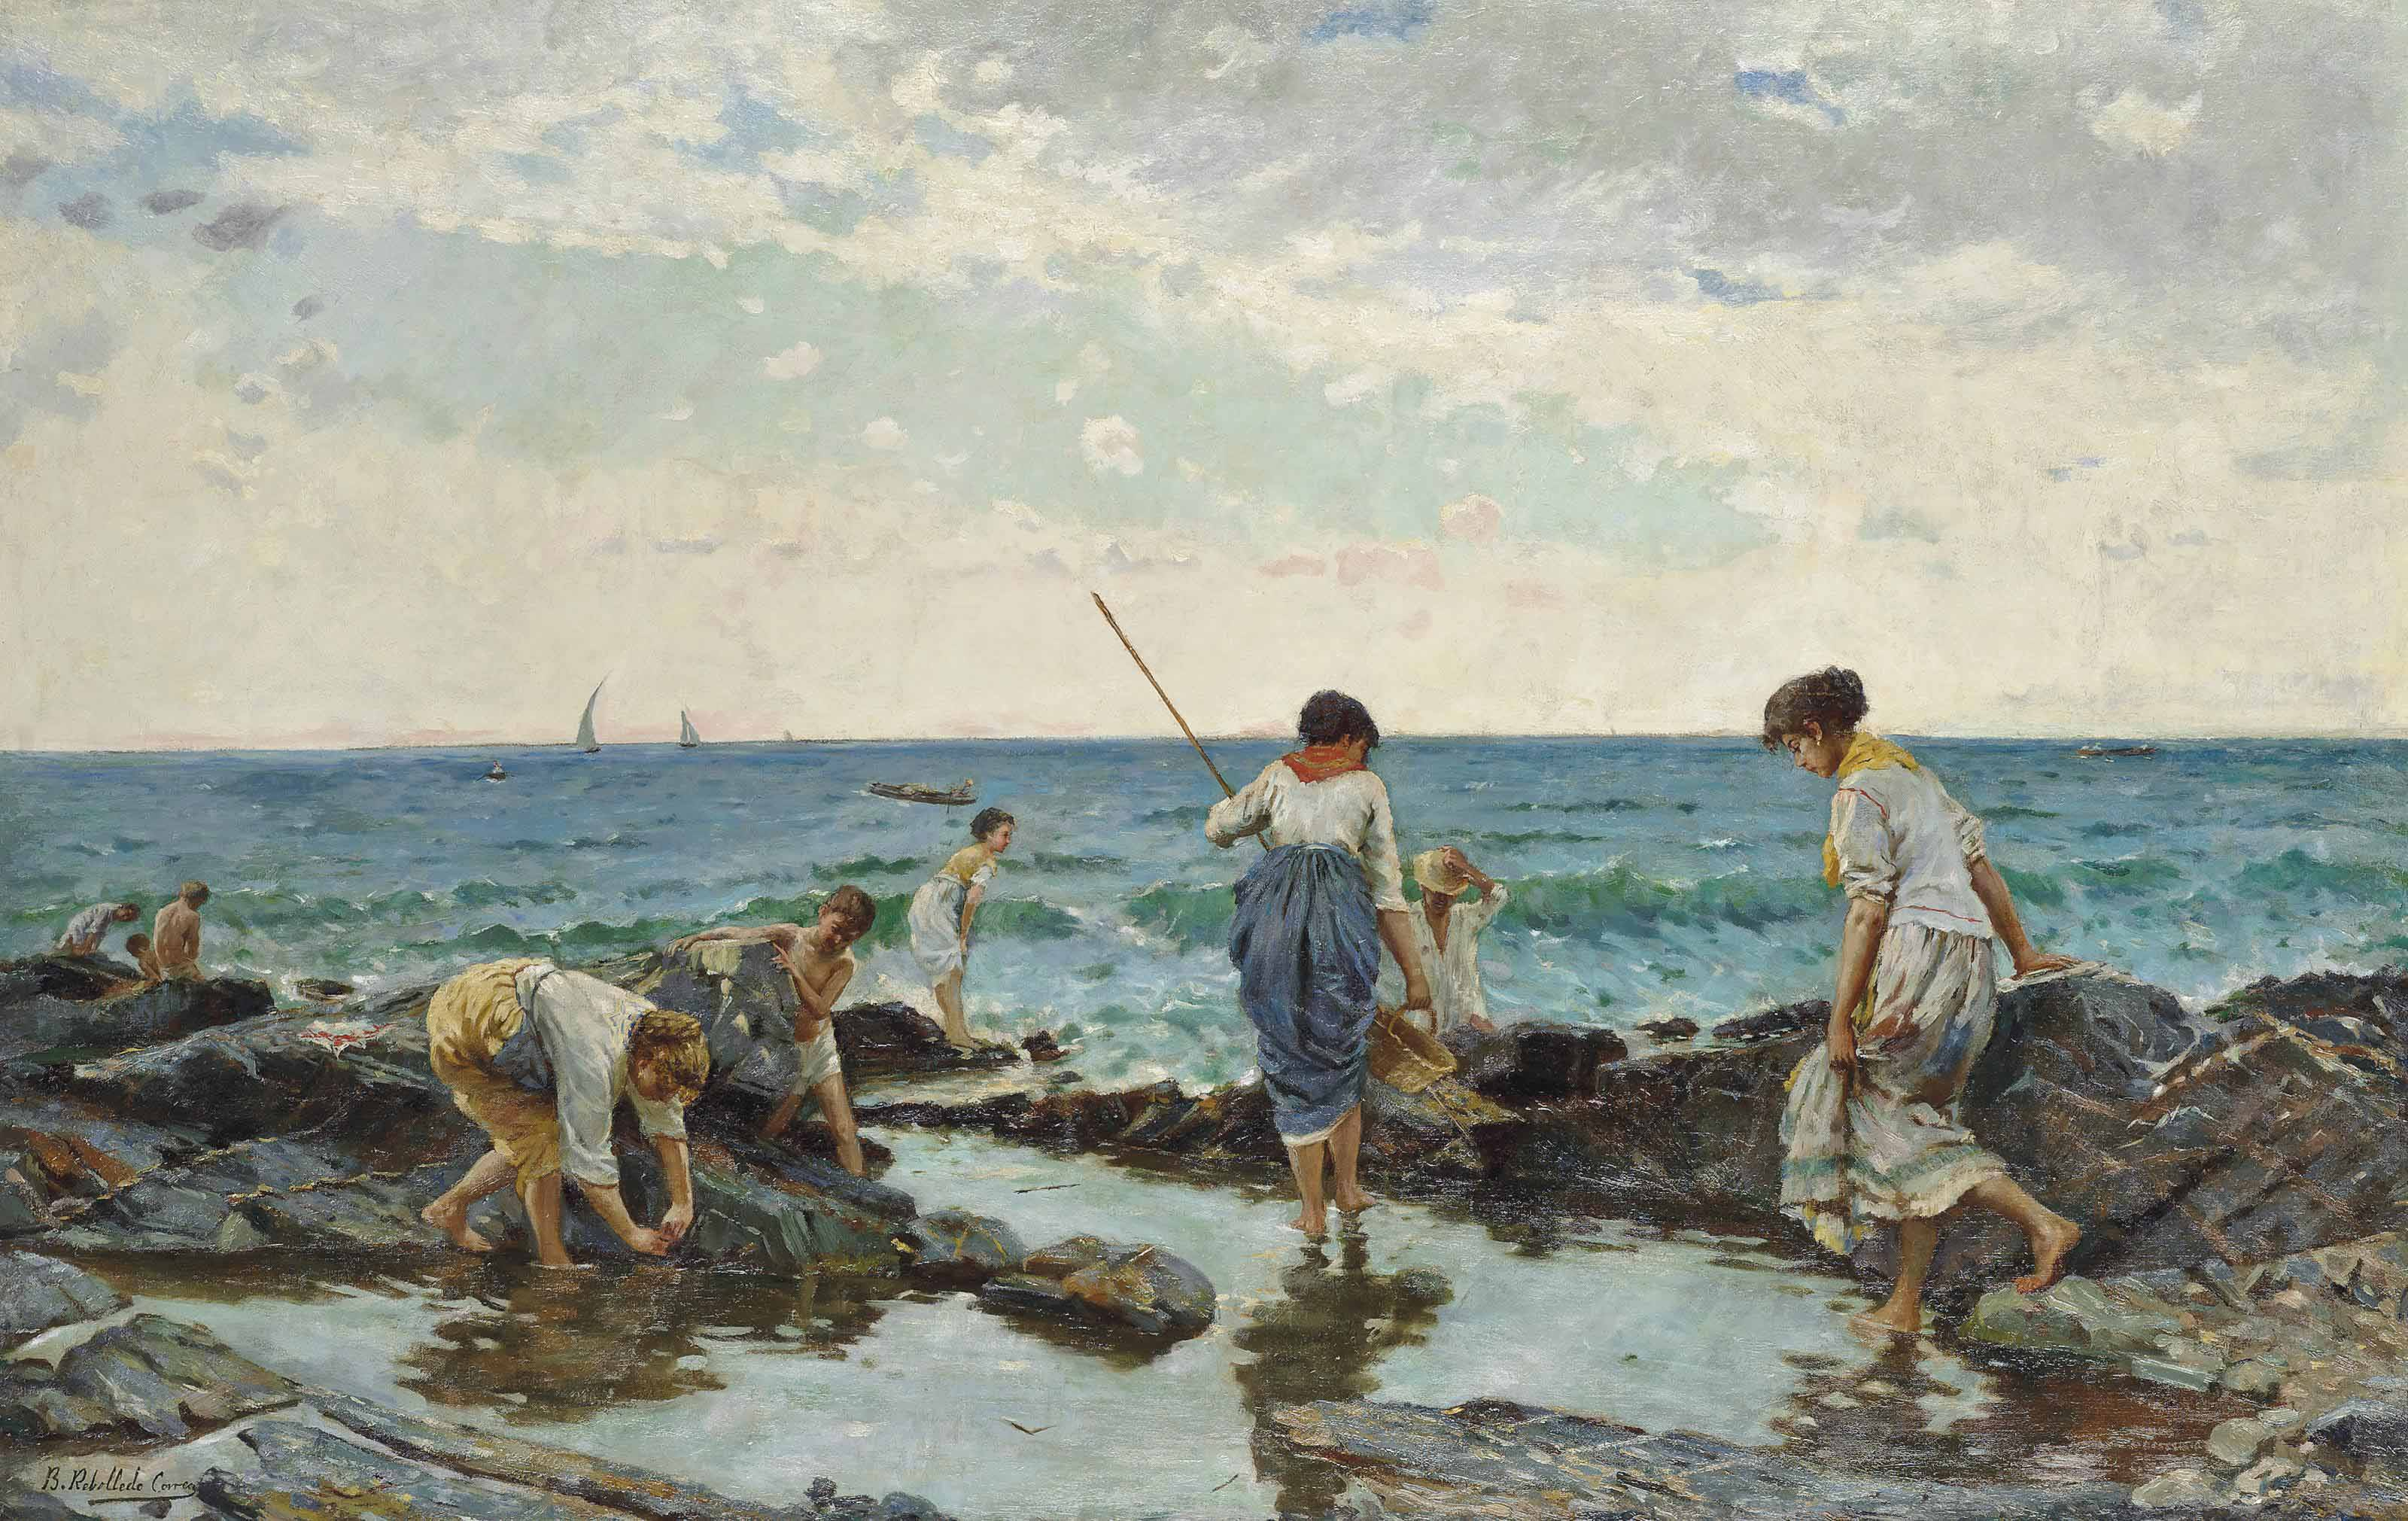 The mussel pickers